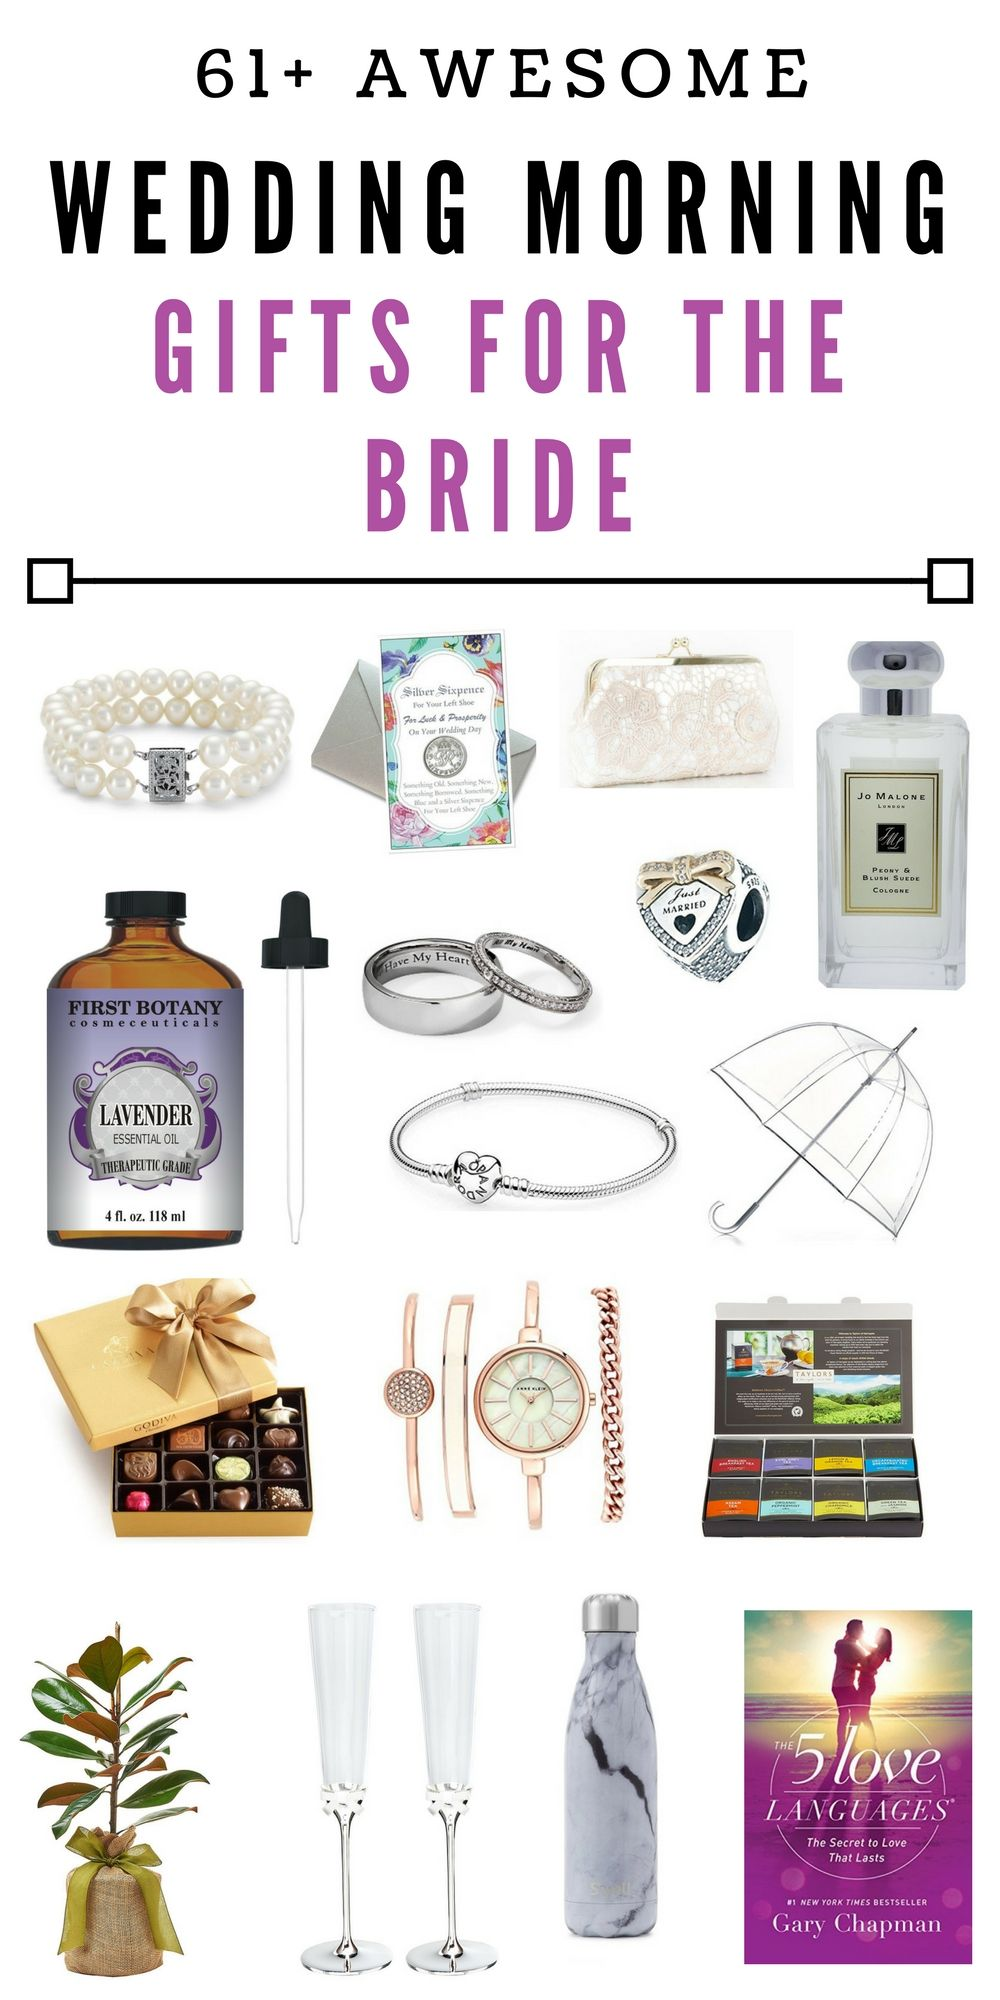 56 Day Of Wedding Morning Gifts For The Bride Wedding Gifts For Bride Wedding Gifts For Bride And Groom Morning Wedding